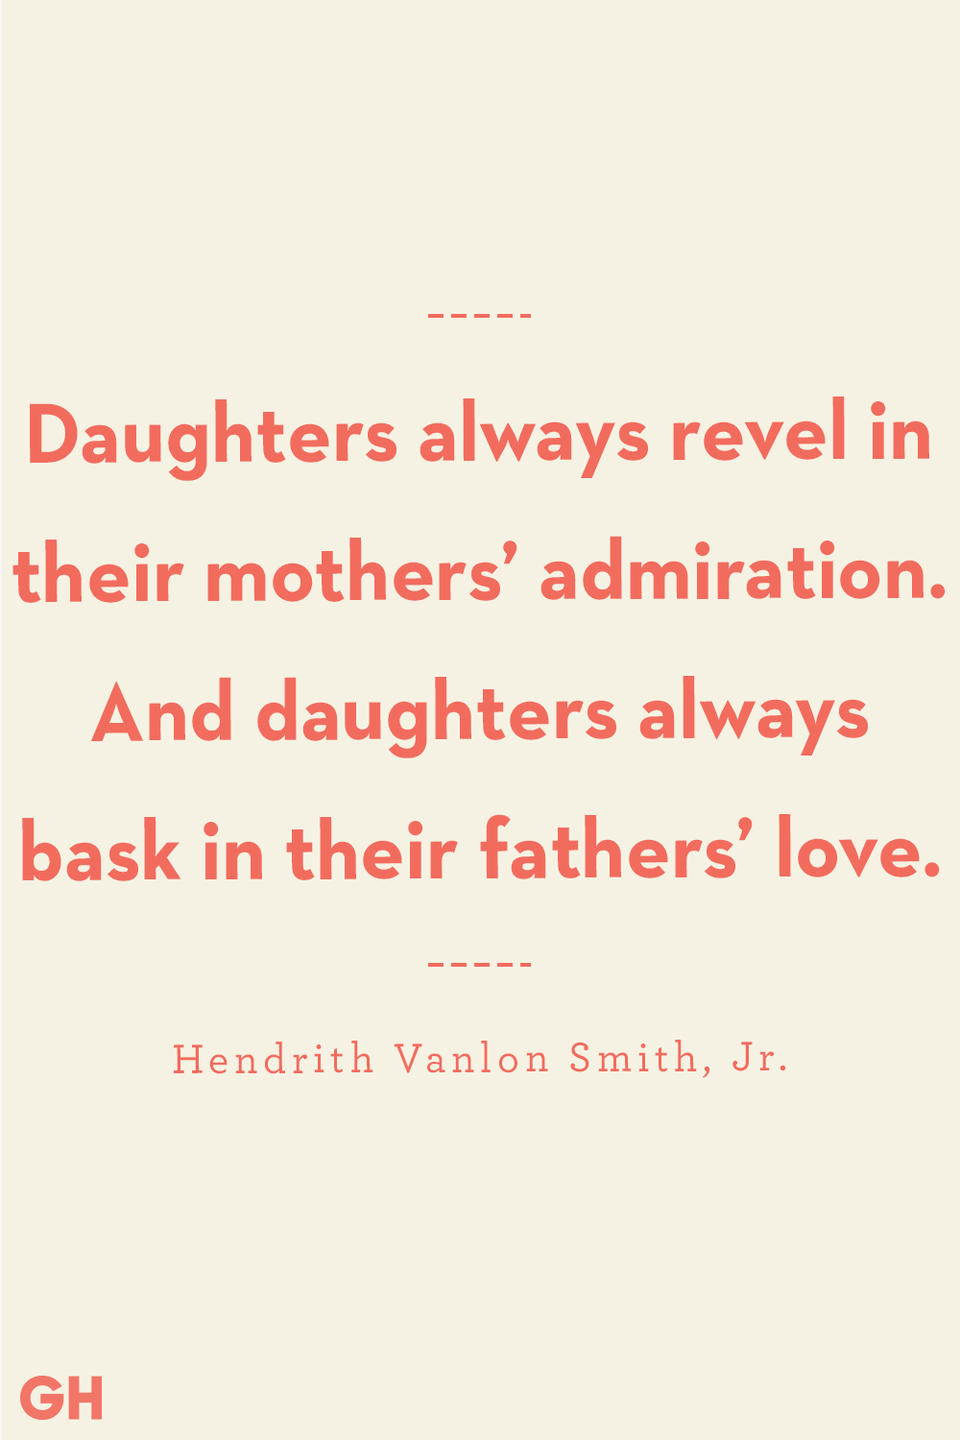 <p>Daughters always revel in their mothers' admiration. And daughters always bask in their fathers' love.</p>